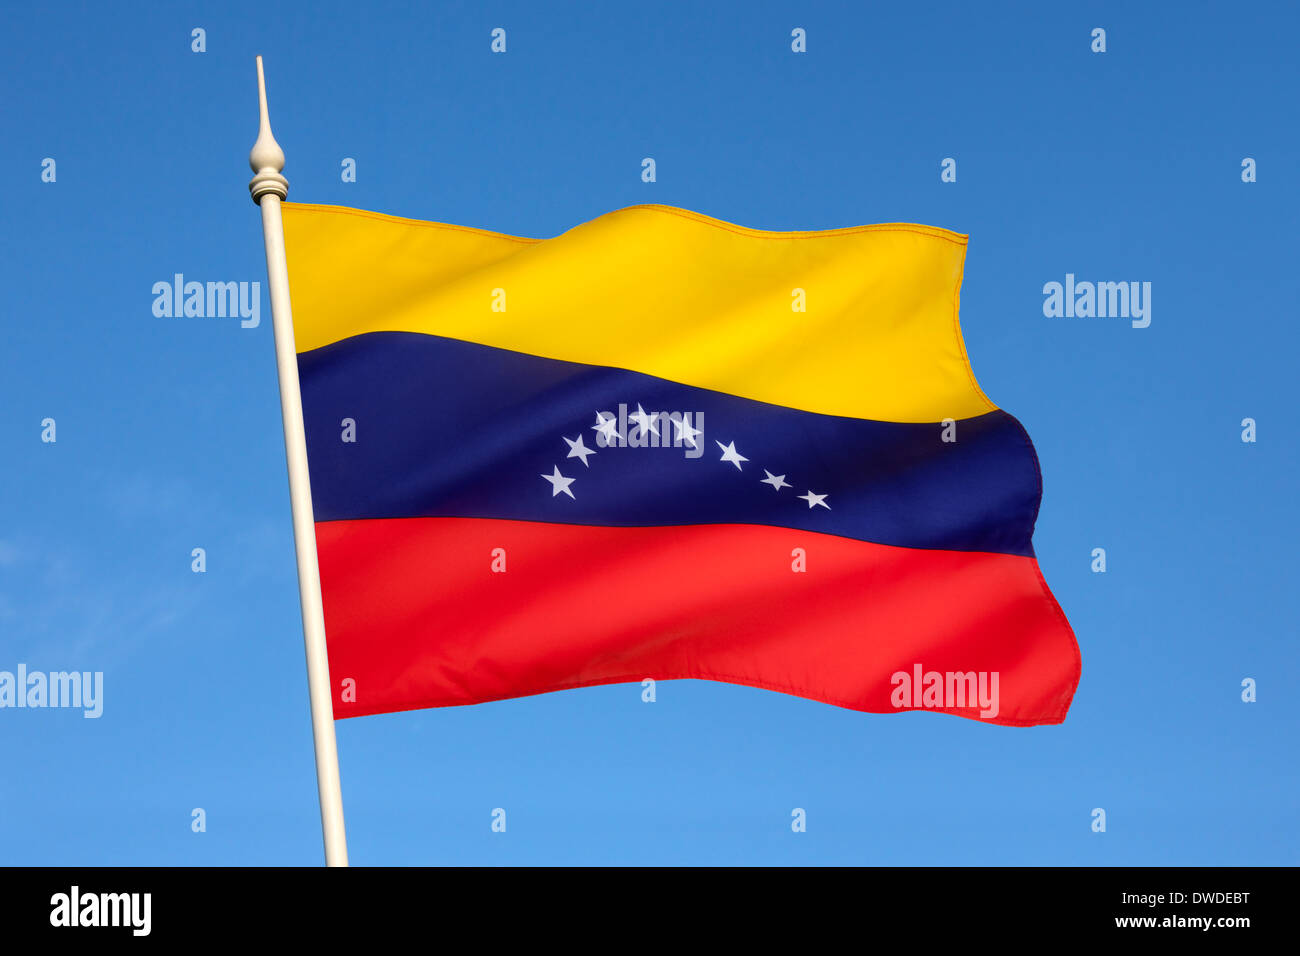 Flag of Venezuela - South America - Stock Image